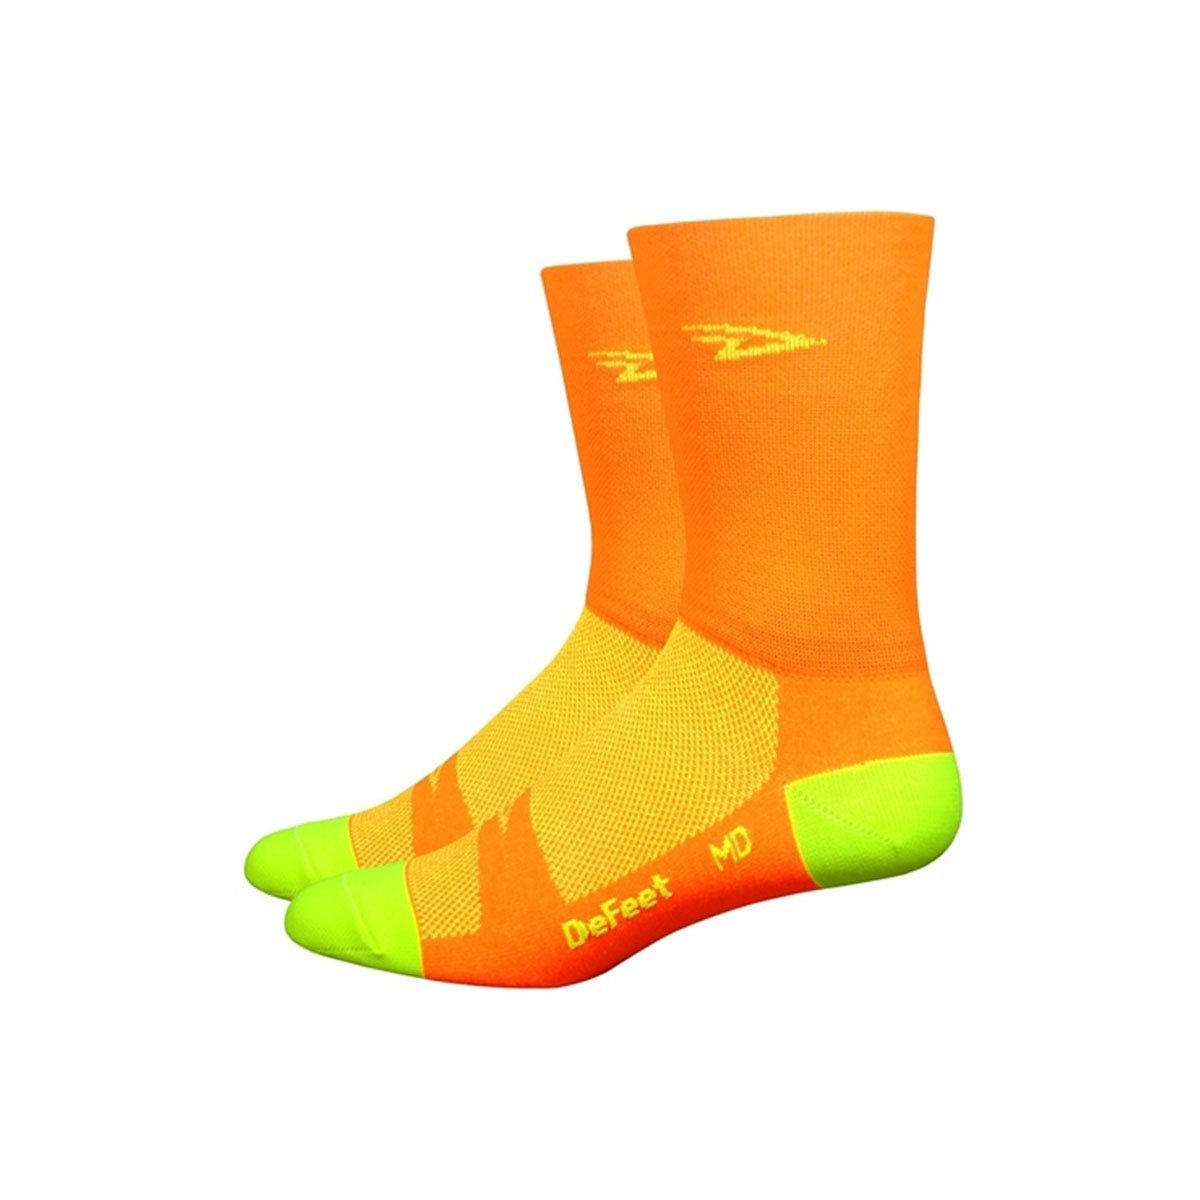 DeFeet Aireator Striper Cuff Socks DeFeet International Inc. AIRTGR